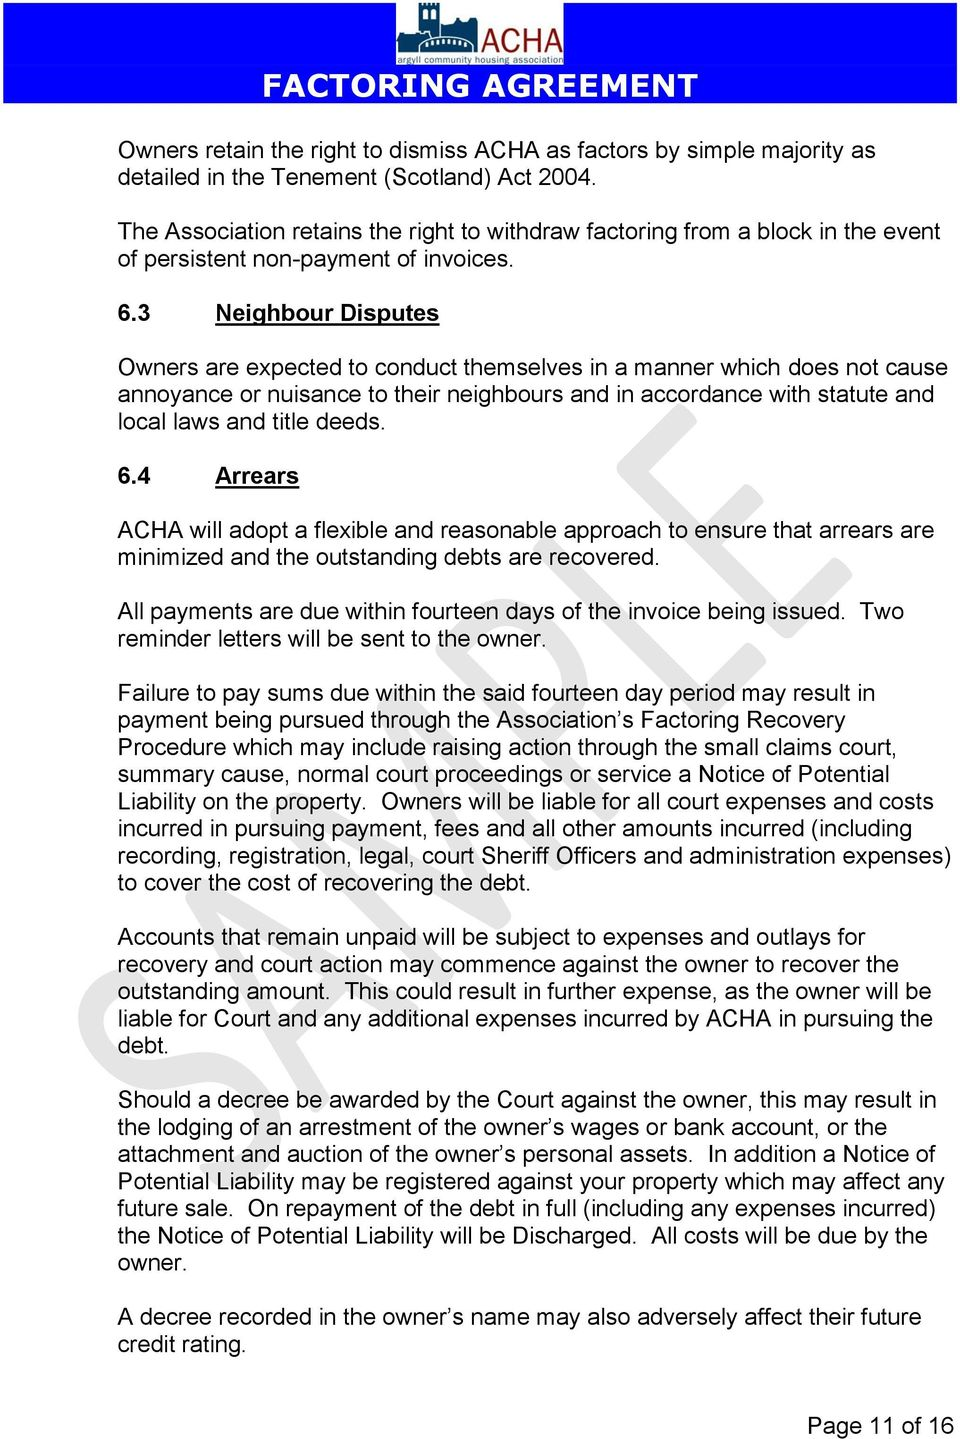 3 Neighbour Disputes Owners are expected to conduct themselves in a manner which does not cause annoyance or nuisance to their neighbours and in accordance with statute and local laws and title deeds.